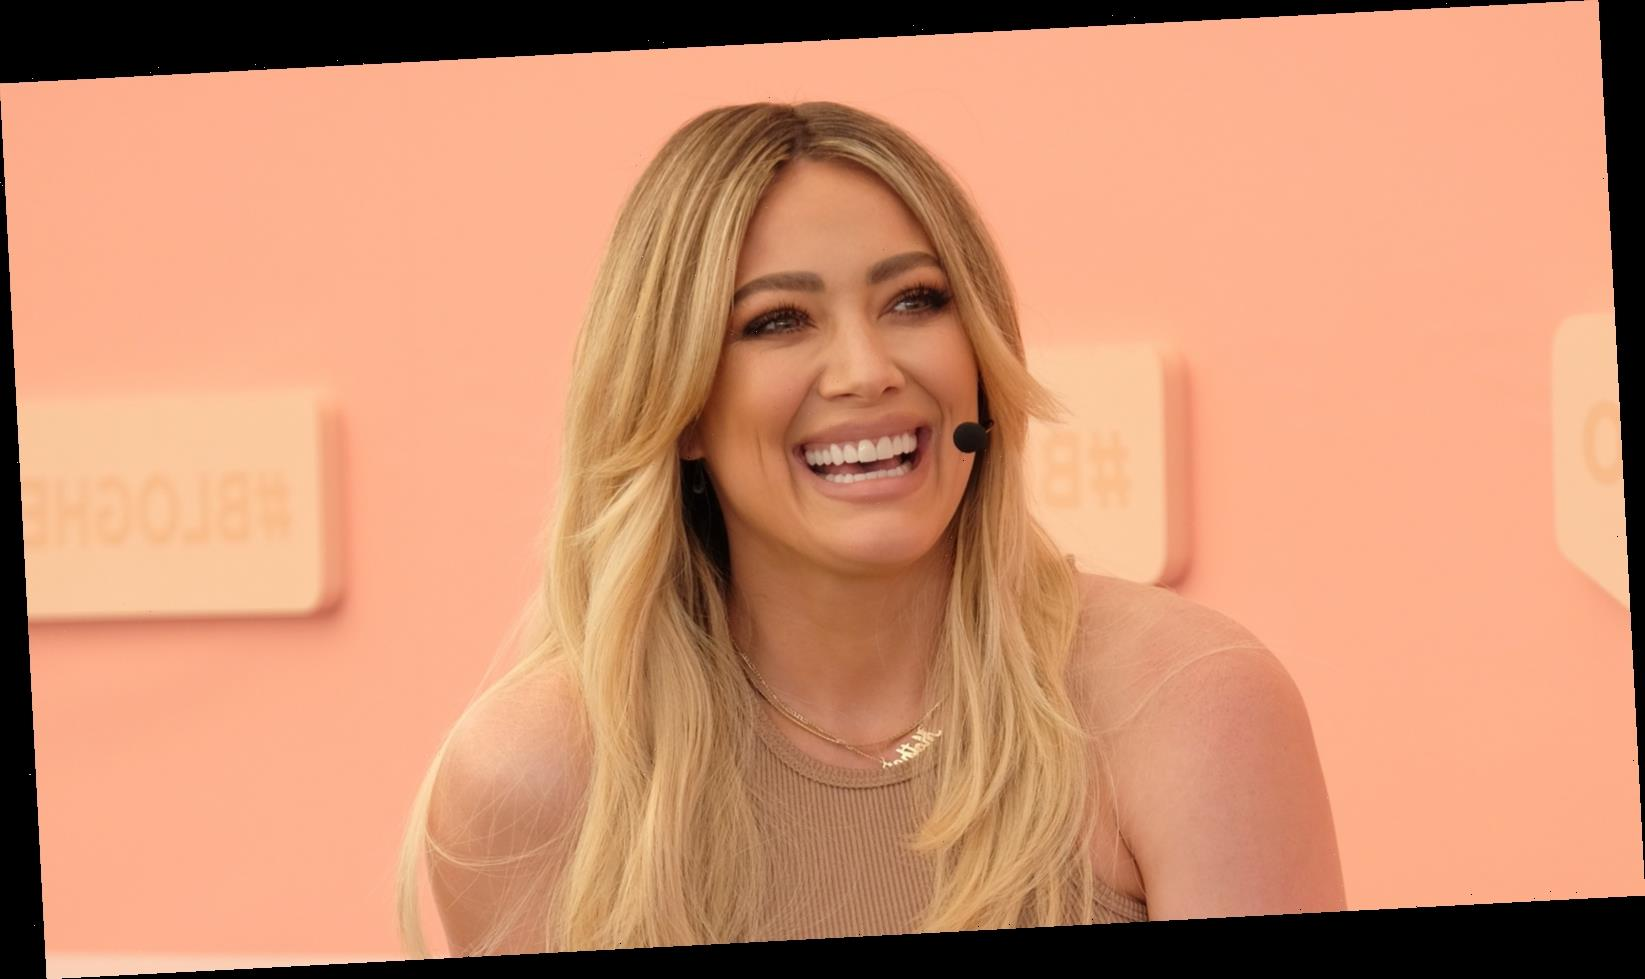 Pregnant Hilary Duff Shares Scary News About COVID Exposure